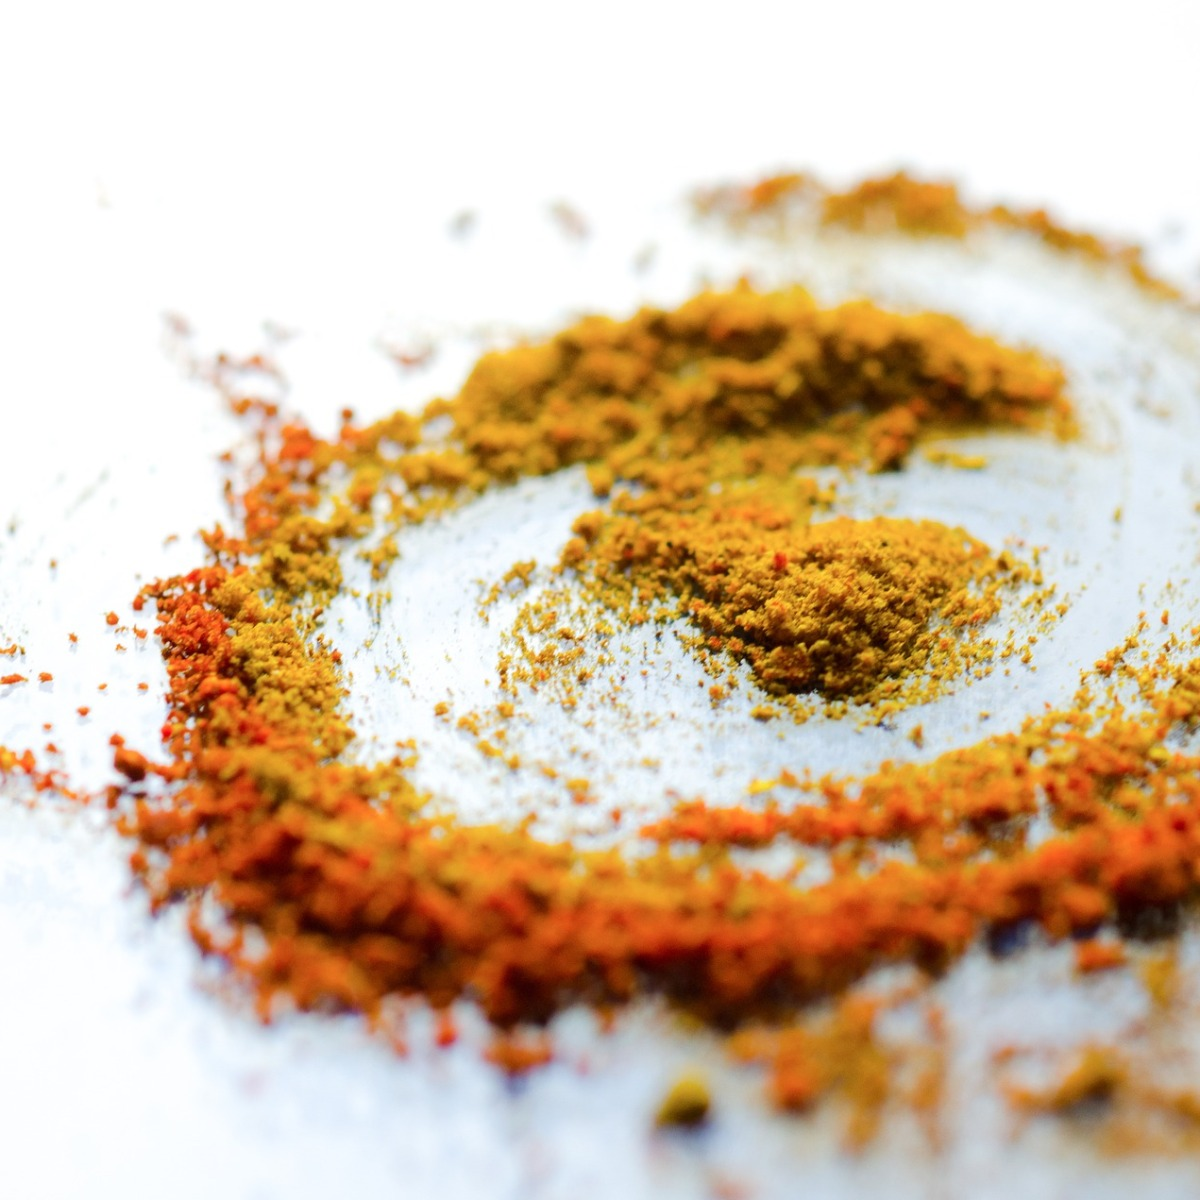 spice-blending-ritual-for-wedding-ceremony